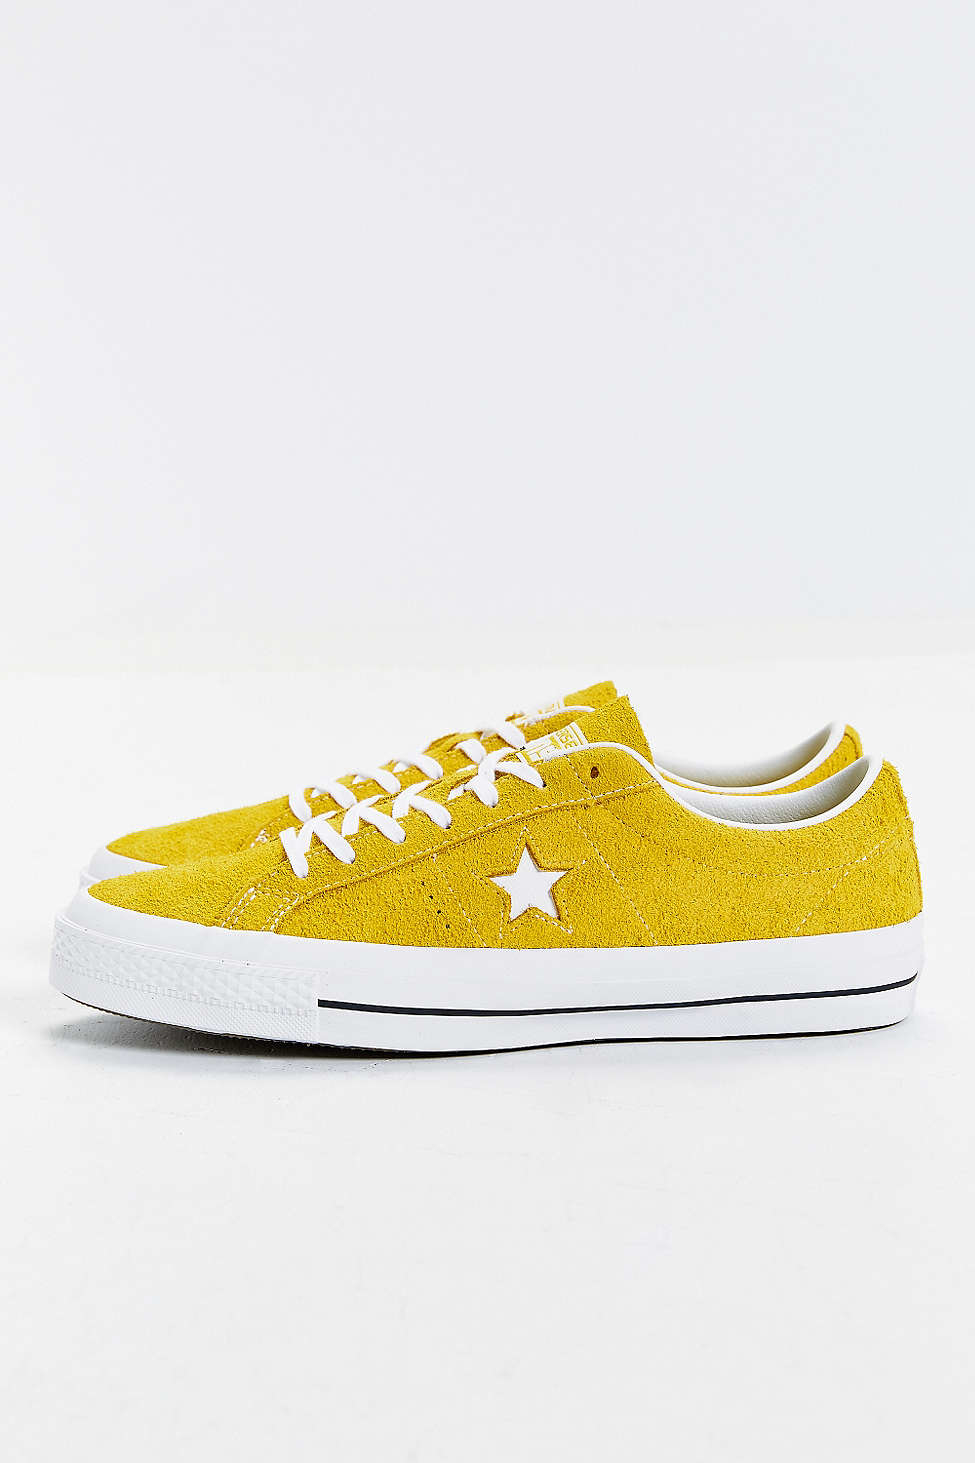 5dc12ccf28 Converse Cons One Star Pro Sneaker in Yellow for Men - Lyst